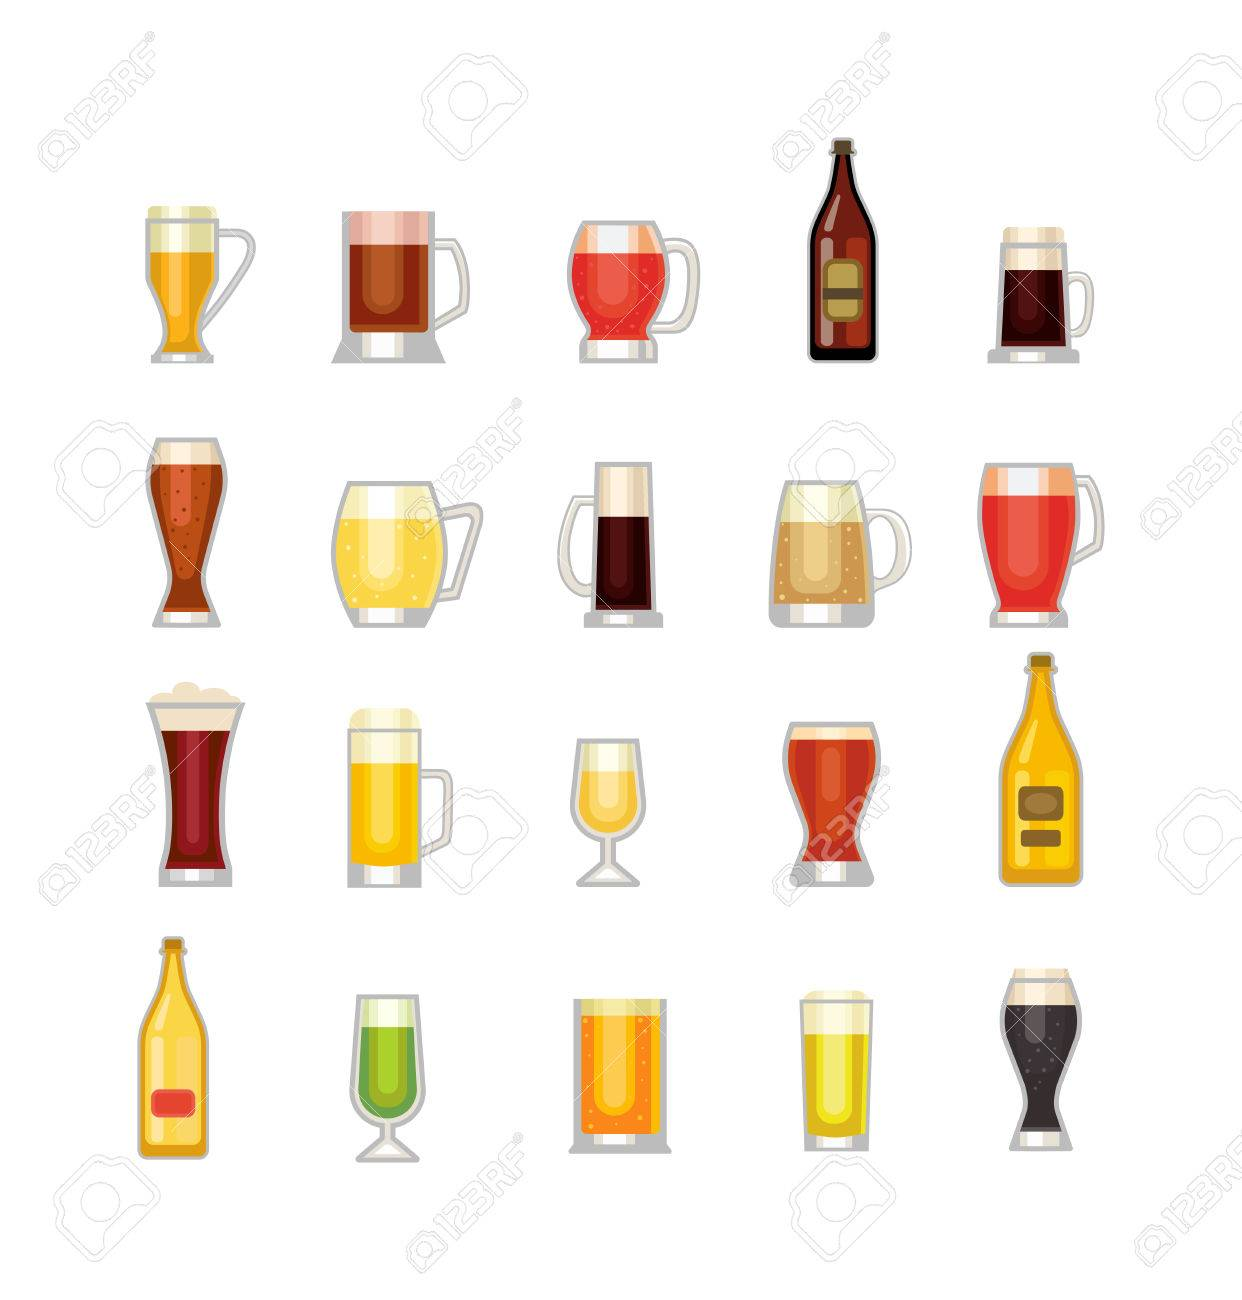 Alcohol Royalty Illustration Of Glass 60230220 Stock And Label Vectors Free Bottle Beer Types Different Image Cliparts